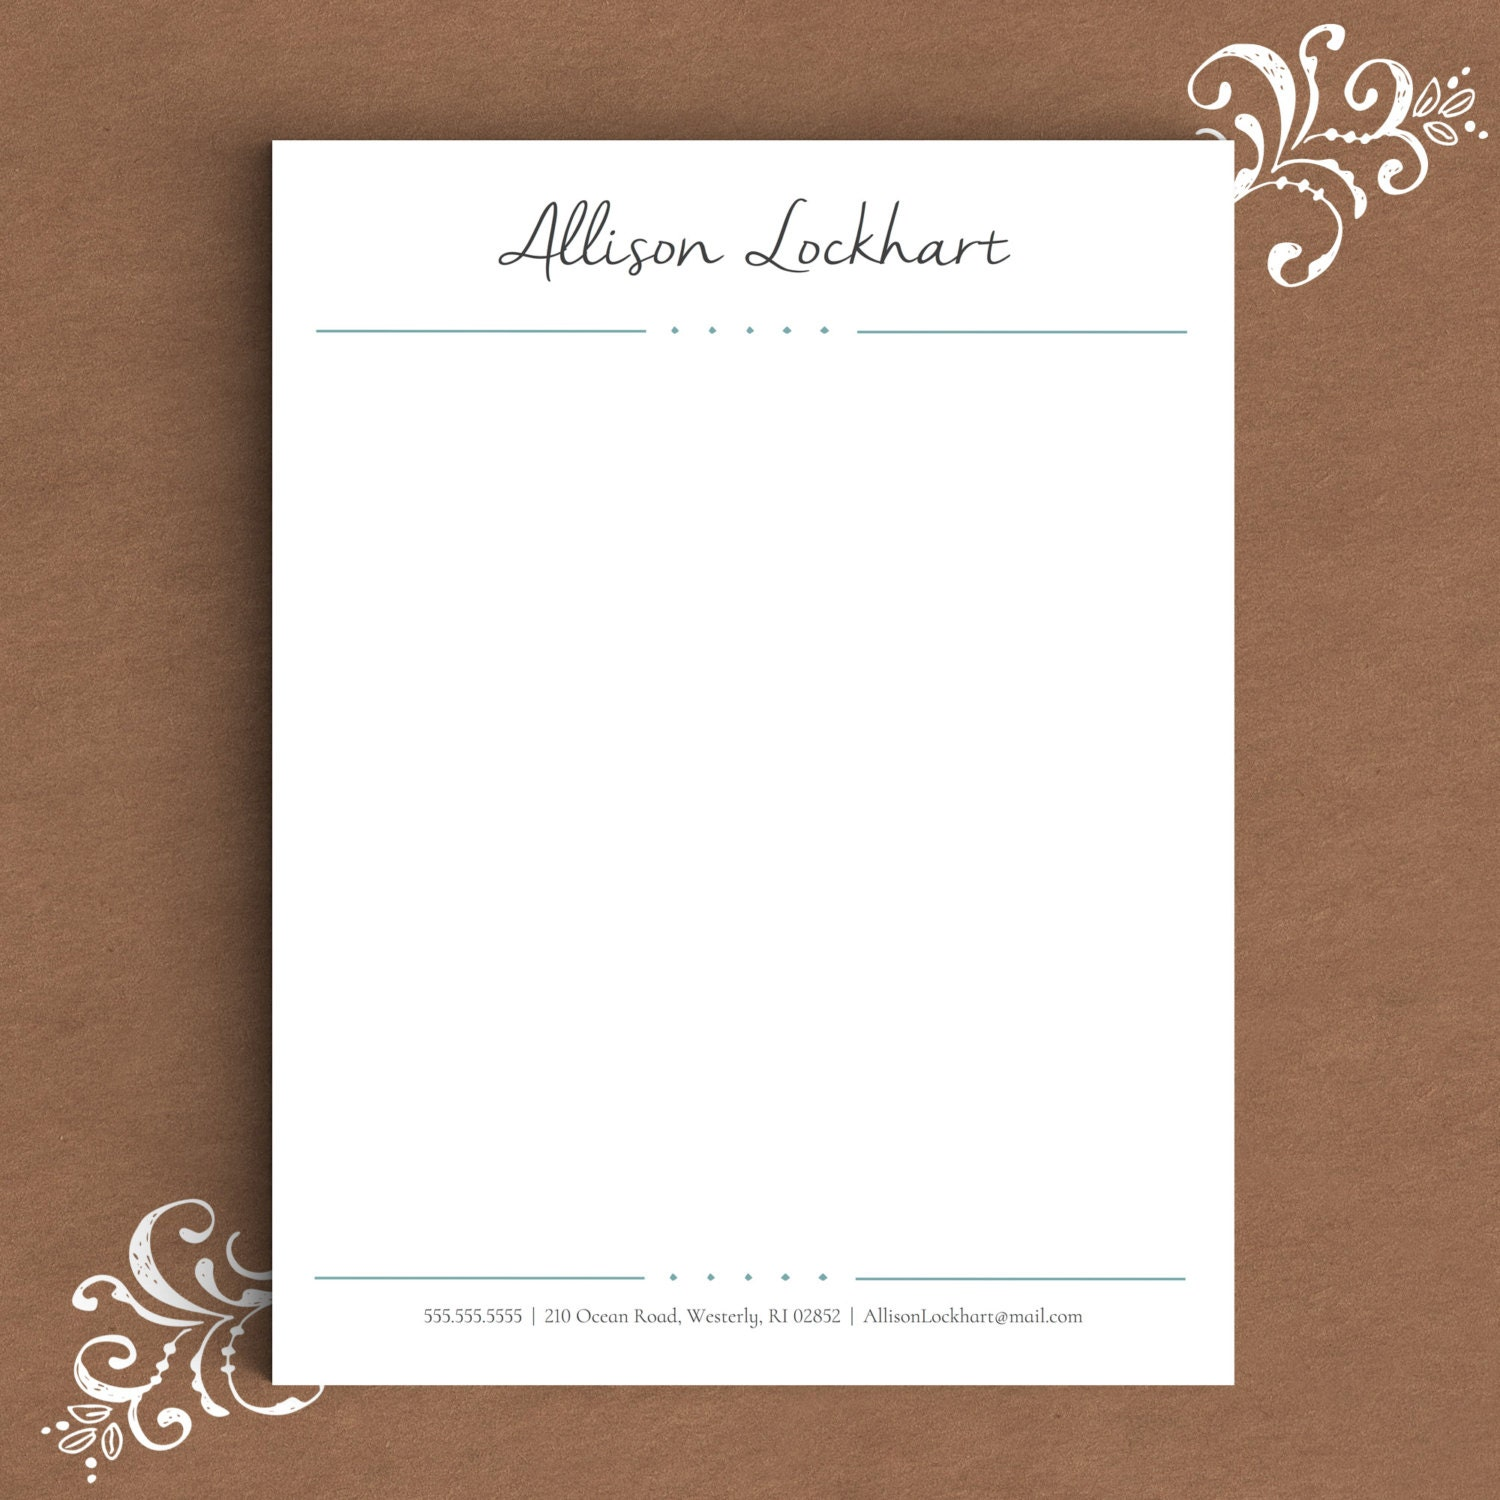 Free Custom Letterhead: Letterhead Template For Word DIY Custom Letterhead